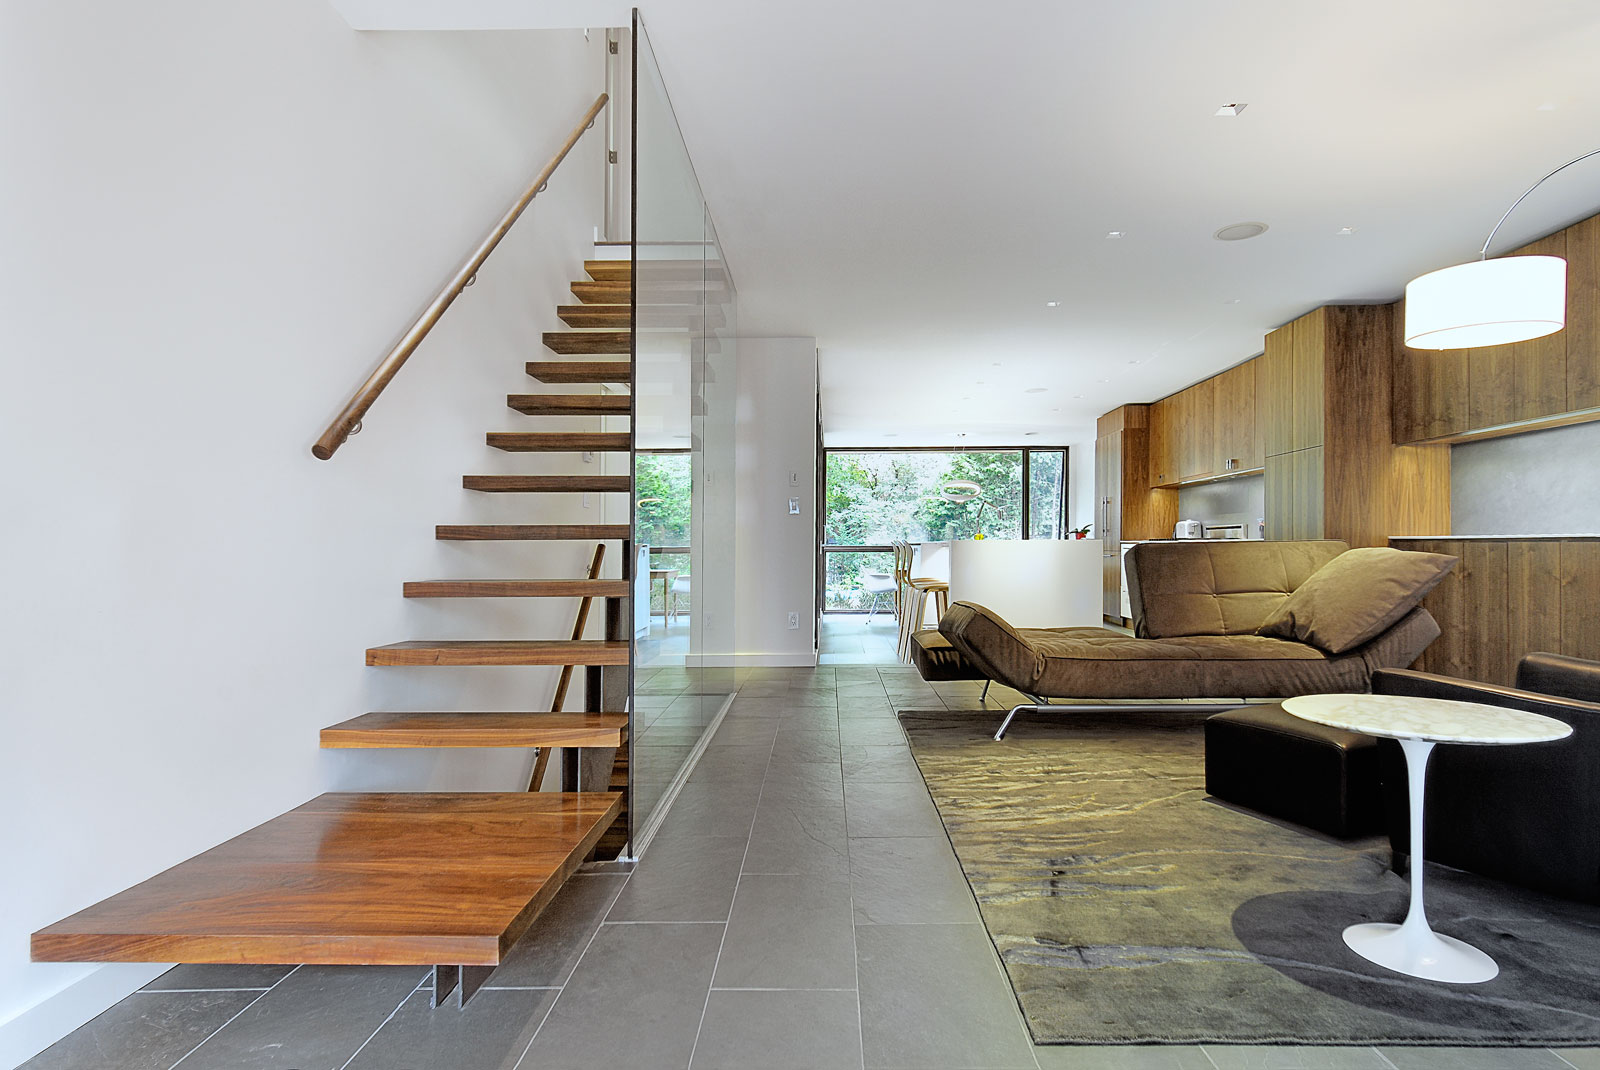 North kingsway residence remodeling by altius architecture for Renovar casa